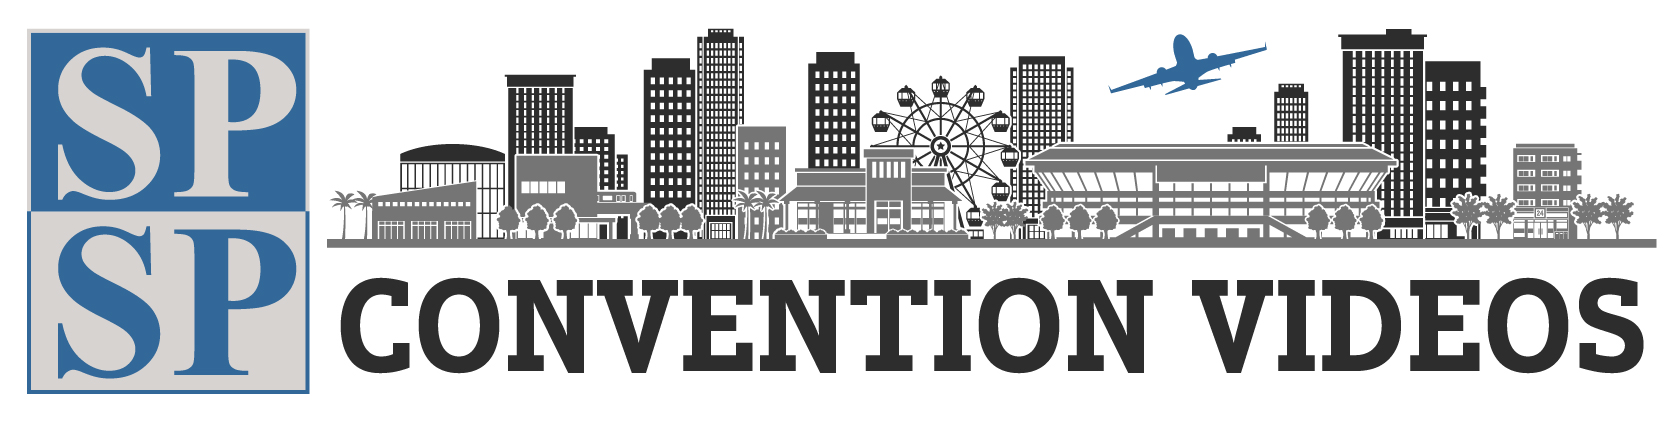 Convention Videos logo